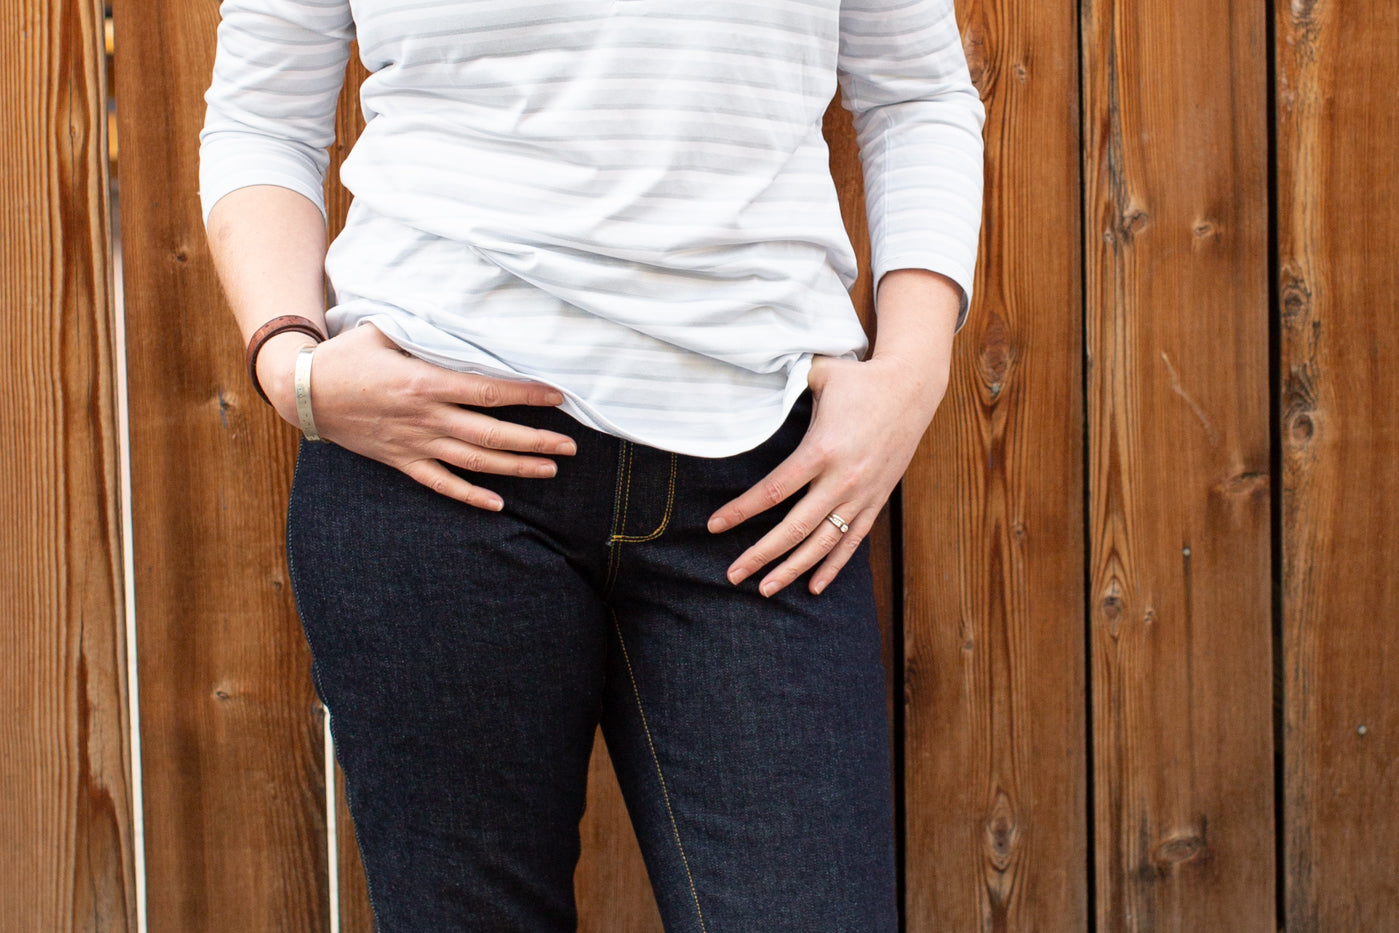 Photography close-up on a women wearing a white shirt and denim jeans with her hands in her pockets.